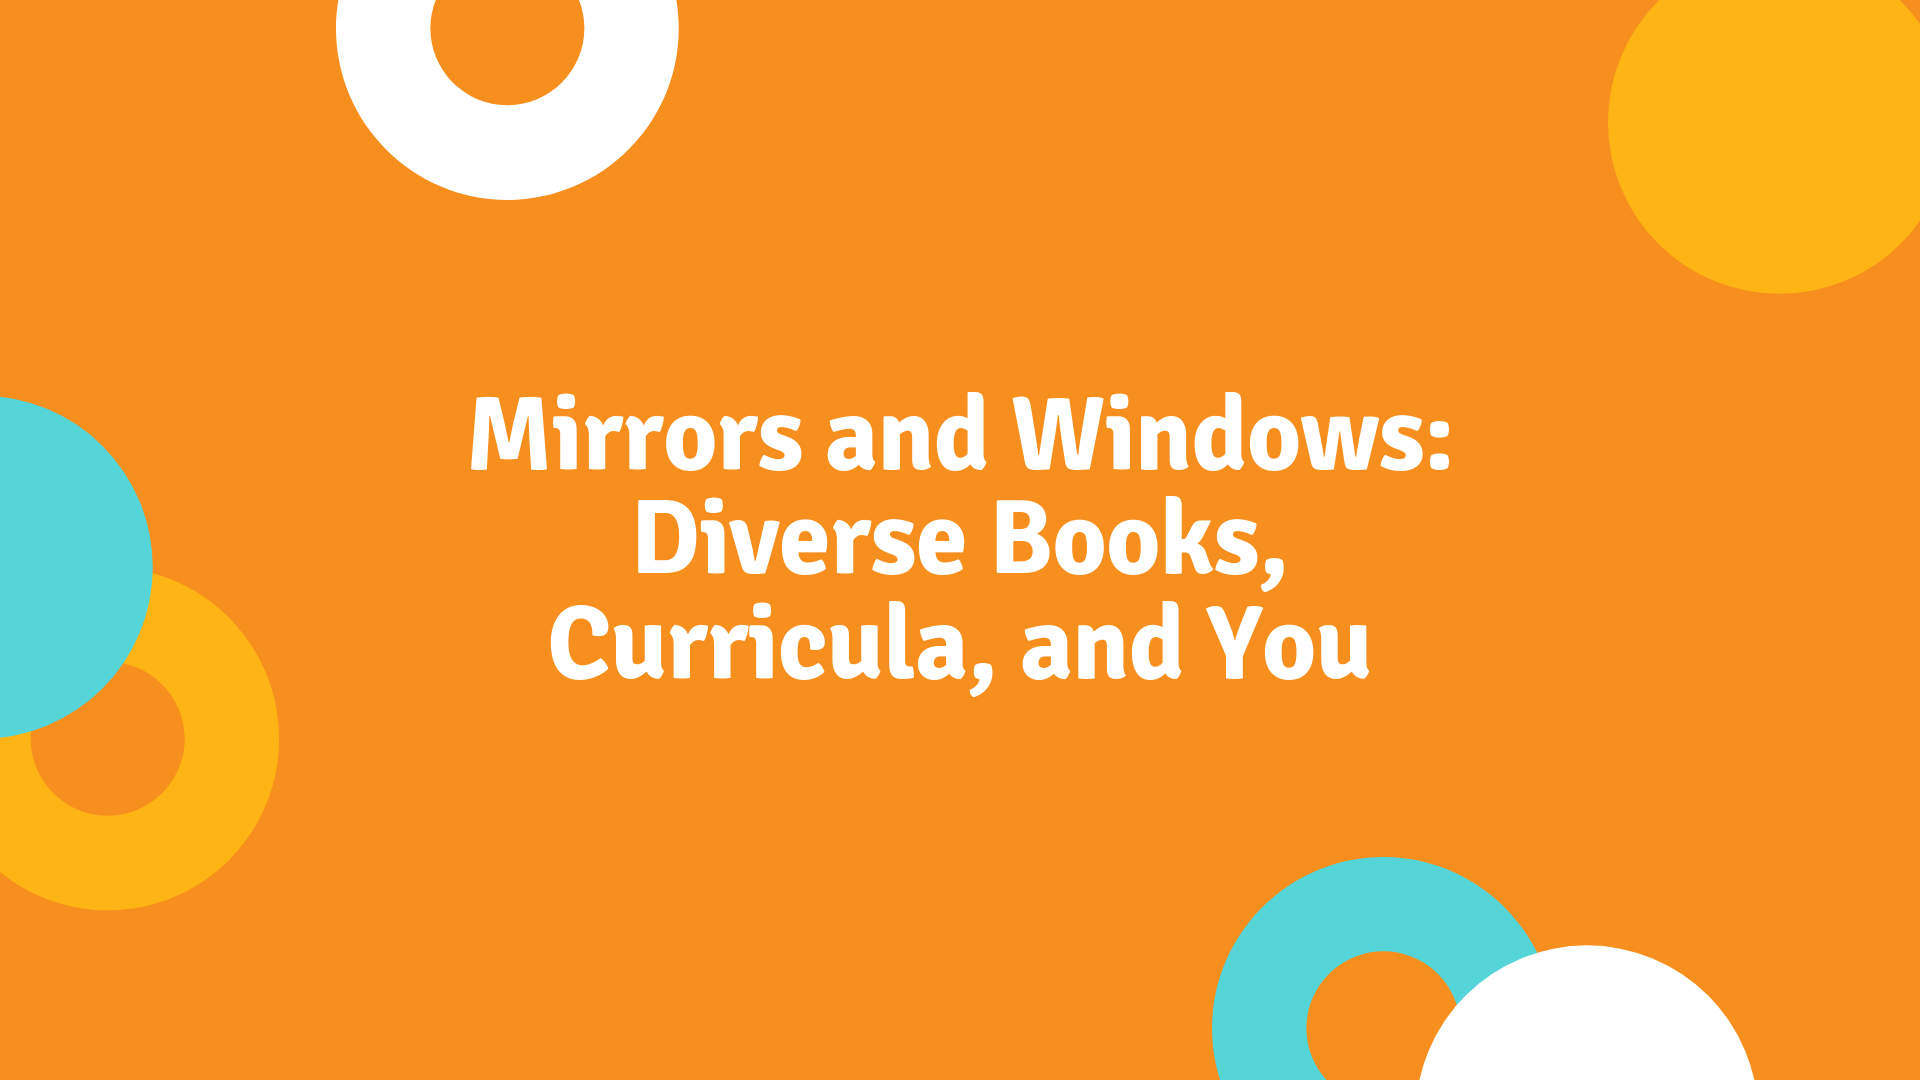 Mirrors and Windows: Diverse Books, Curricula, and You